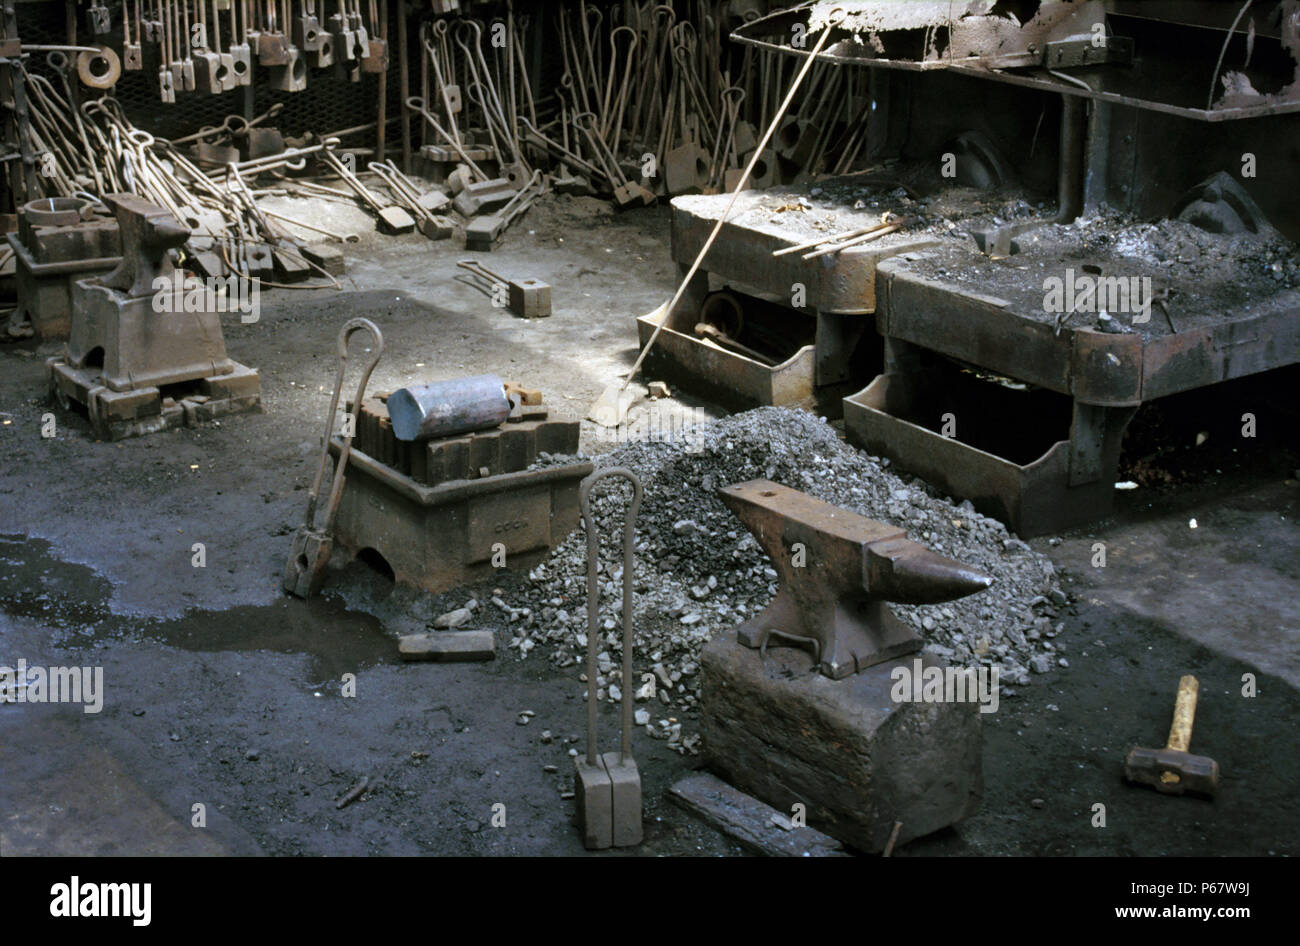 The Forge at Location Works Ghana at the end of the steam age. Anvils from Brooks of Lye in England's Black Country June 1985. - Stock Image